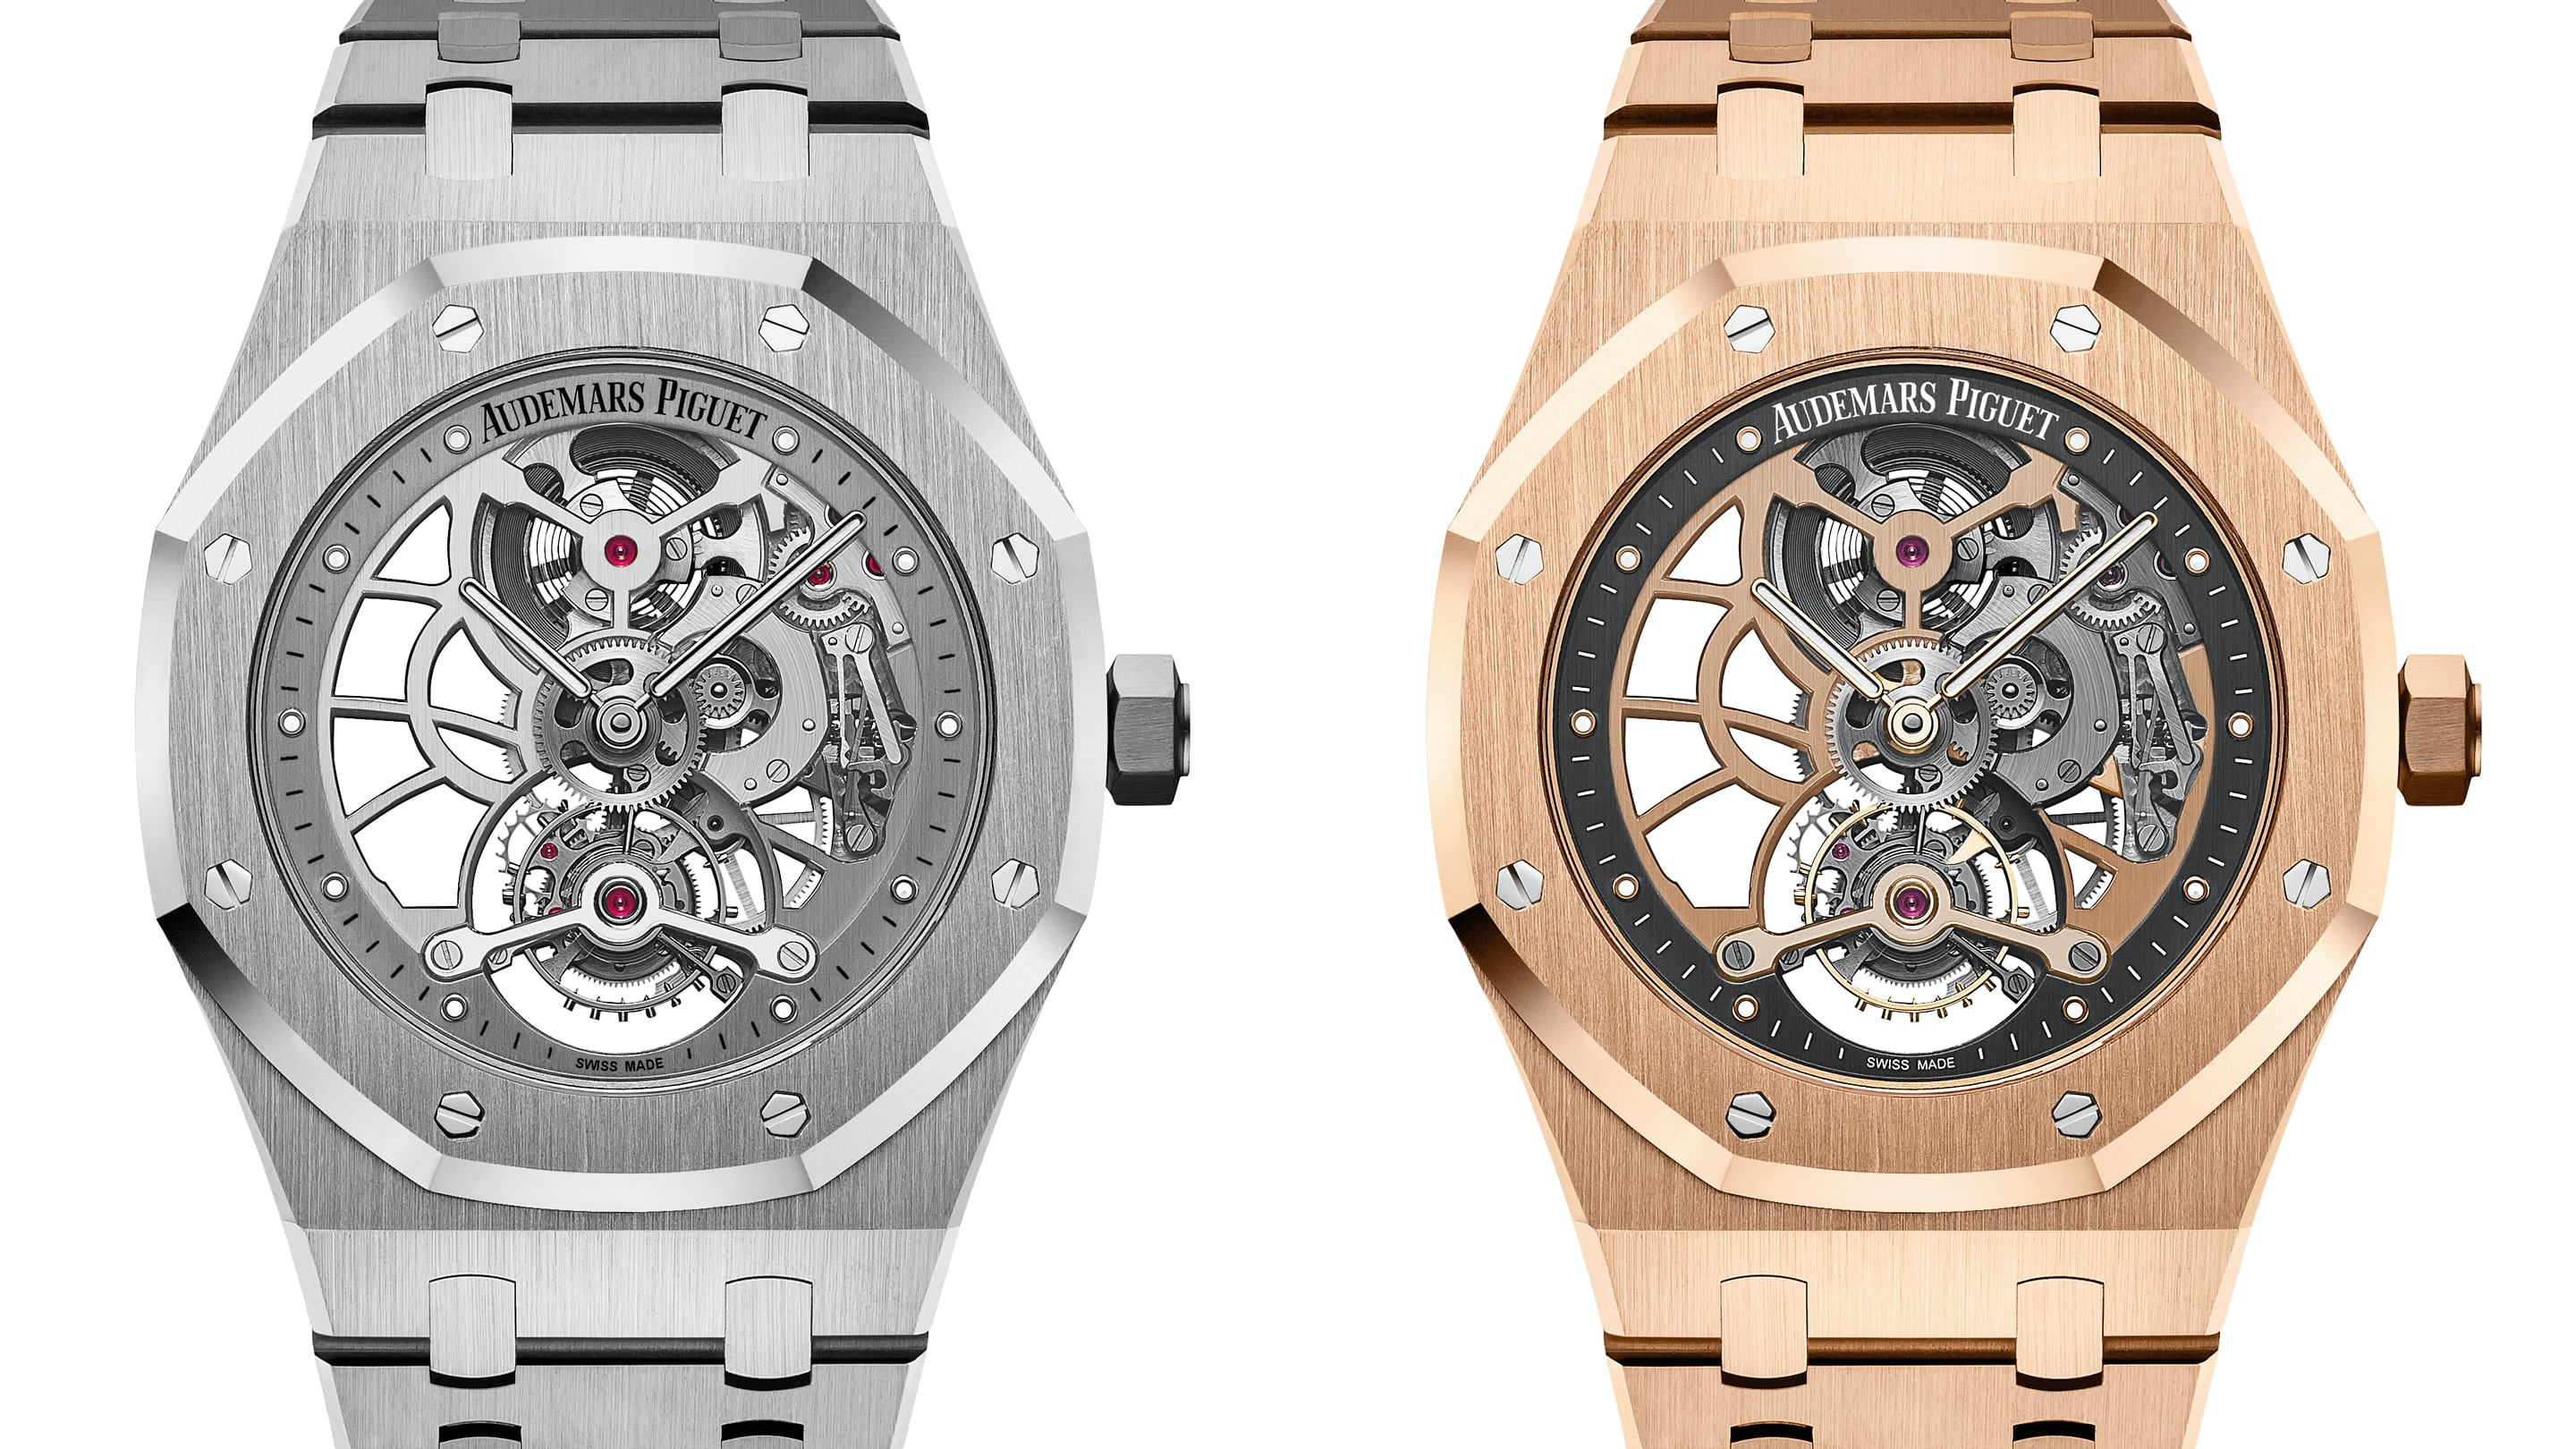 b5f2cbf3fc8 Introducing  The Audemars Piguet Royal Oak Tourbillon Extra-Thin Openworked